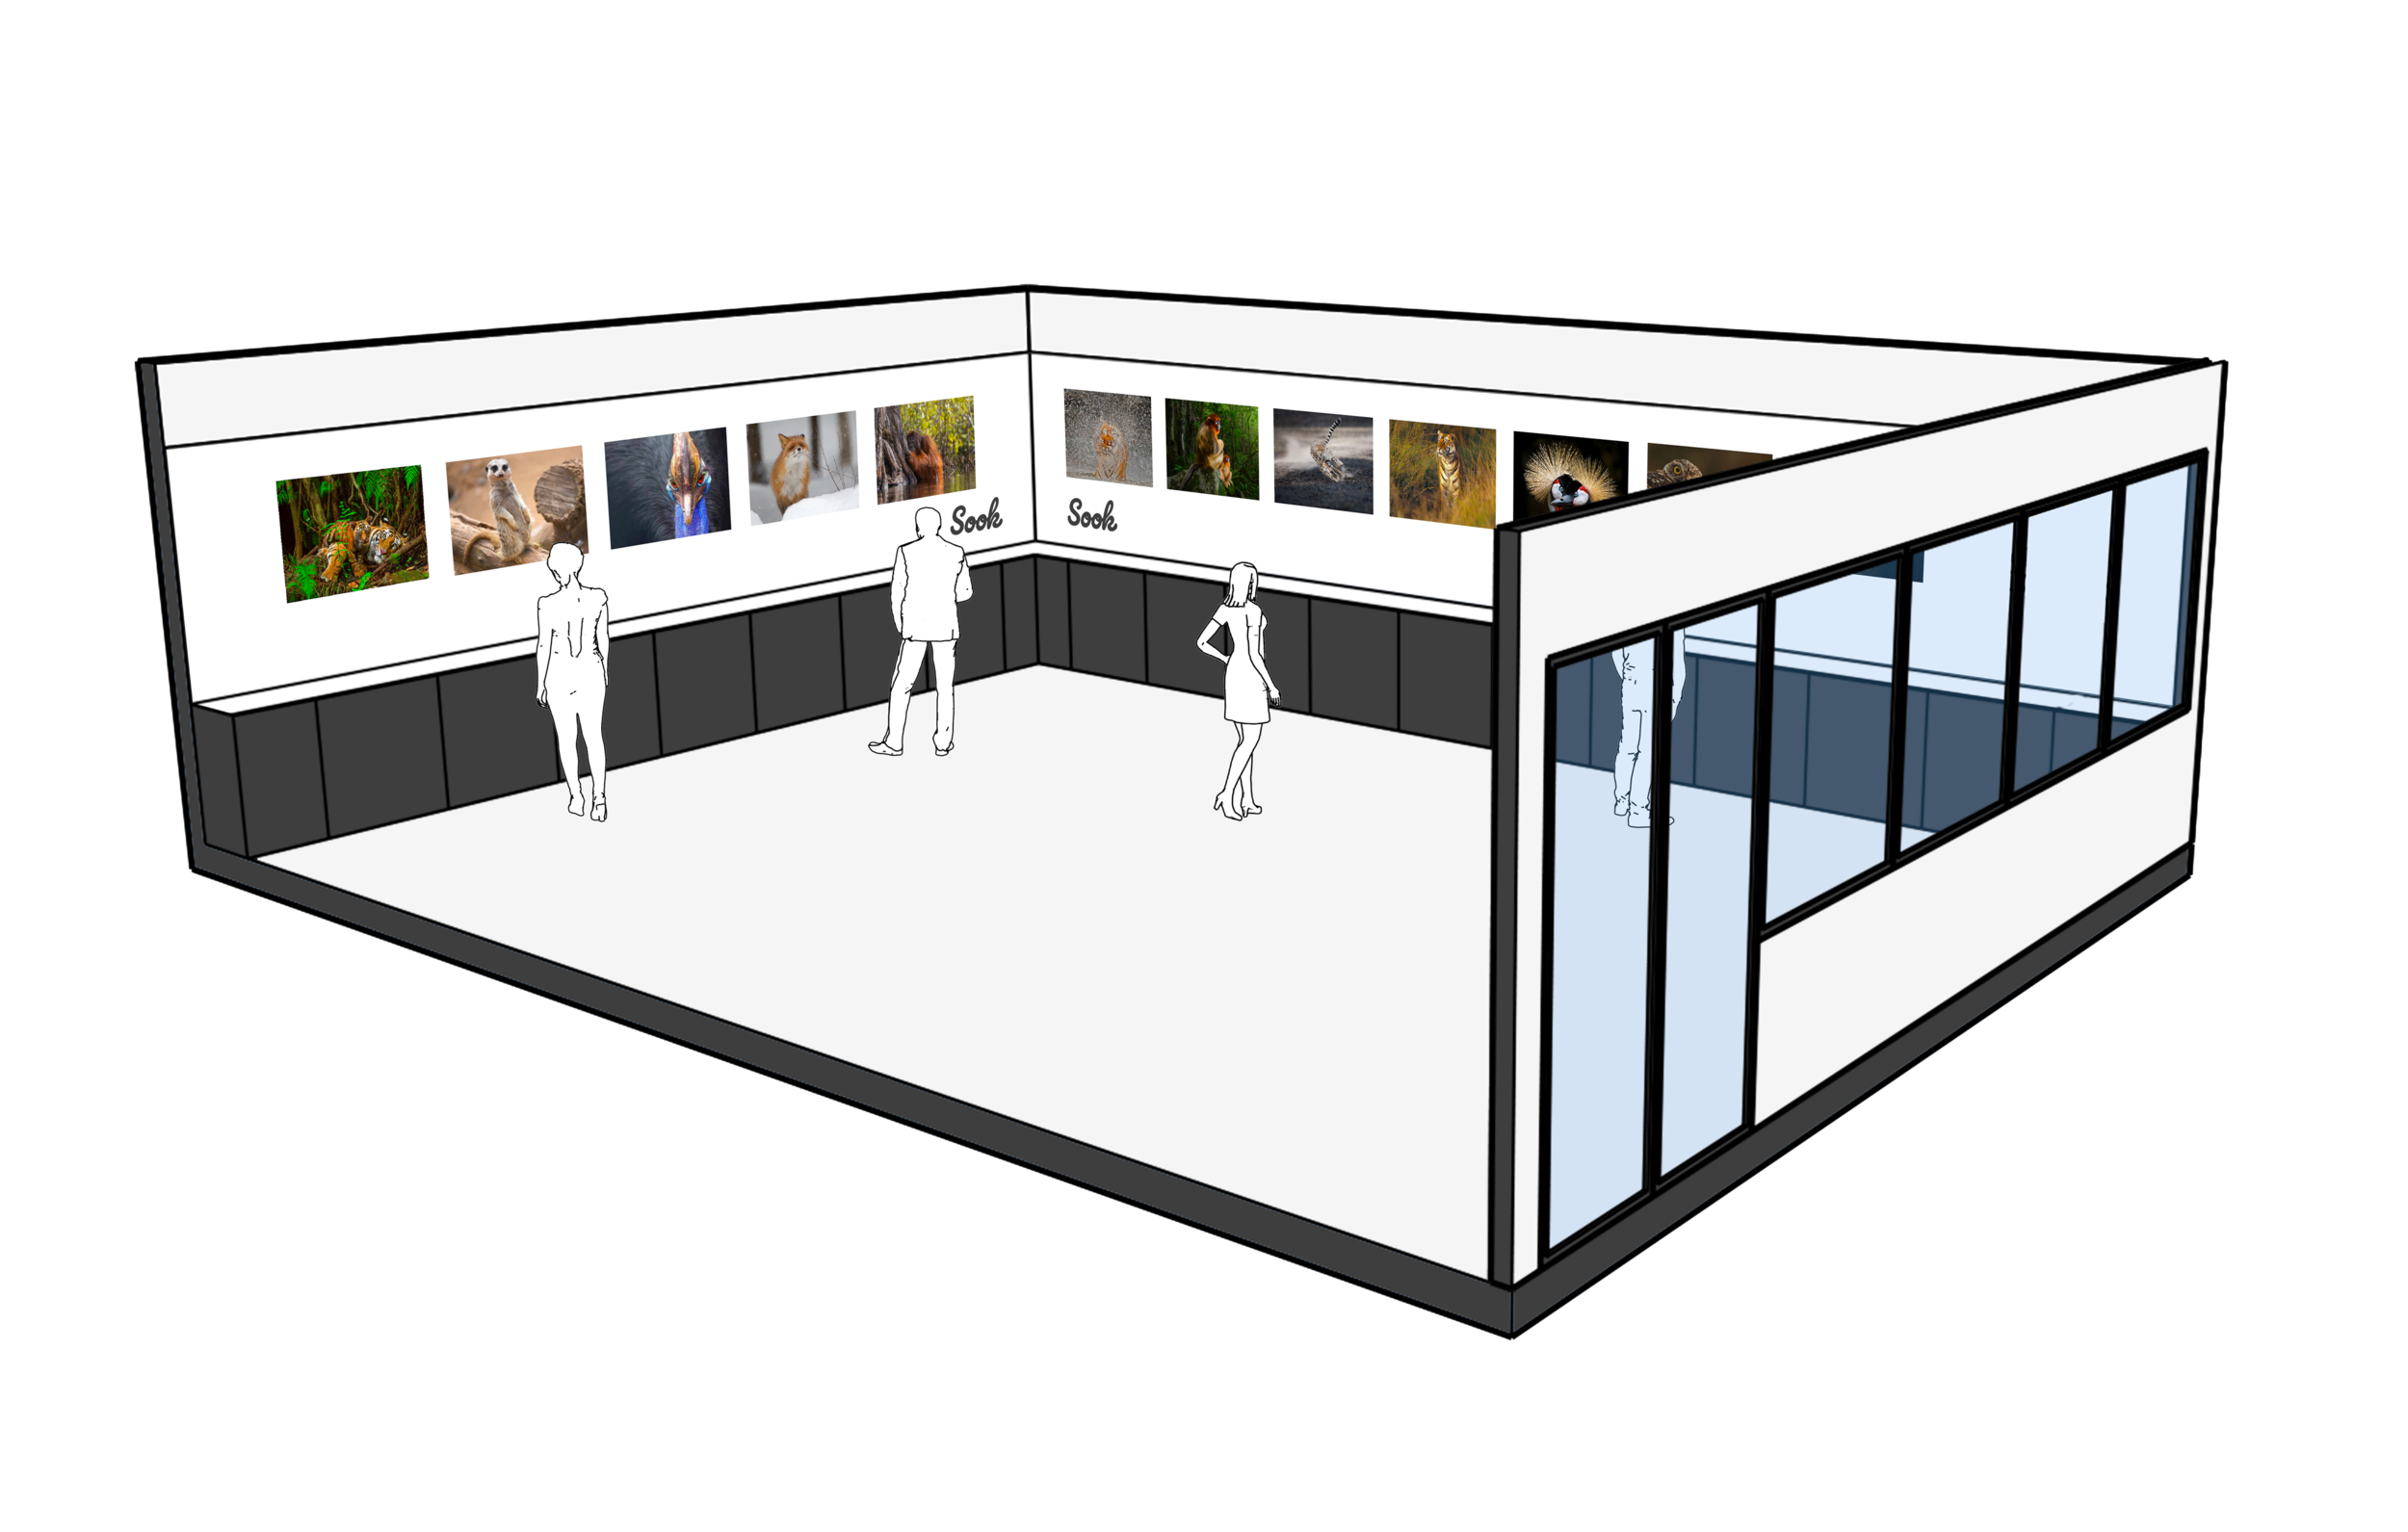 This is a Sook Exhibition Space -